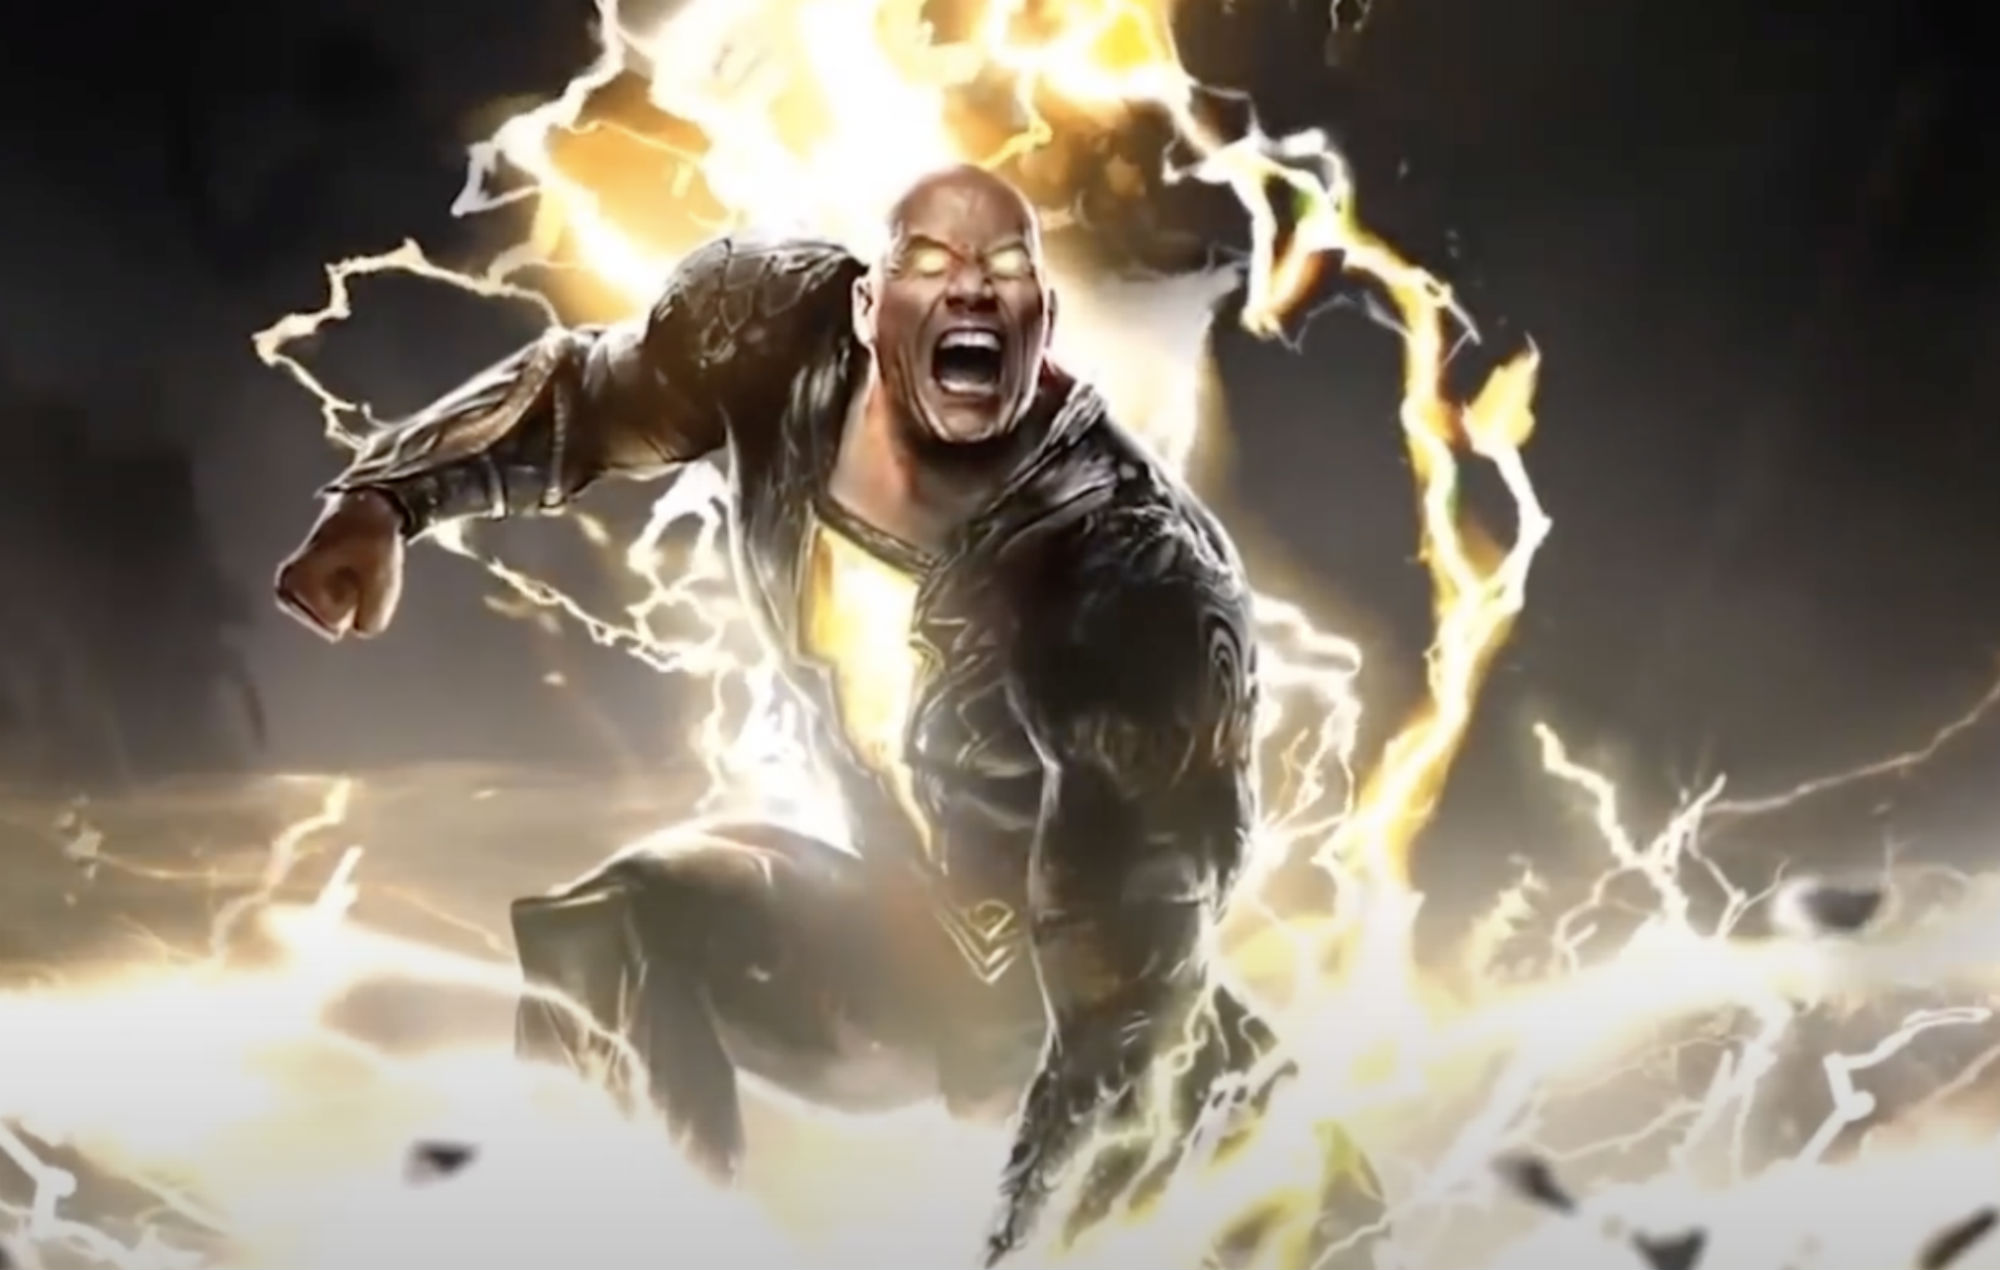 Dwayne 'The Rock' Johnson unveils first look at Black Adam character